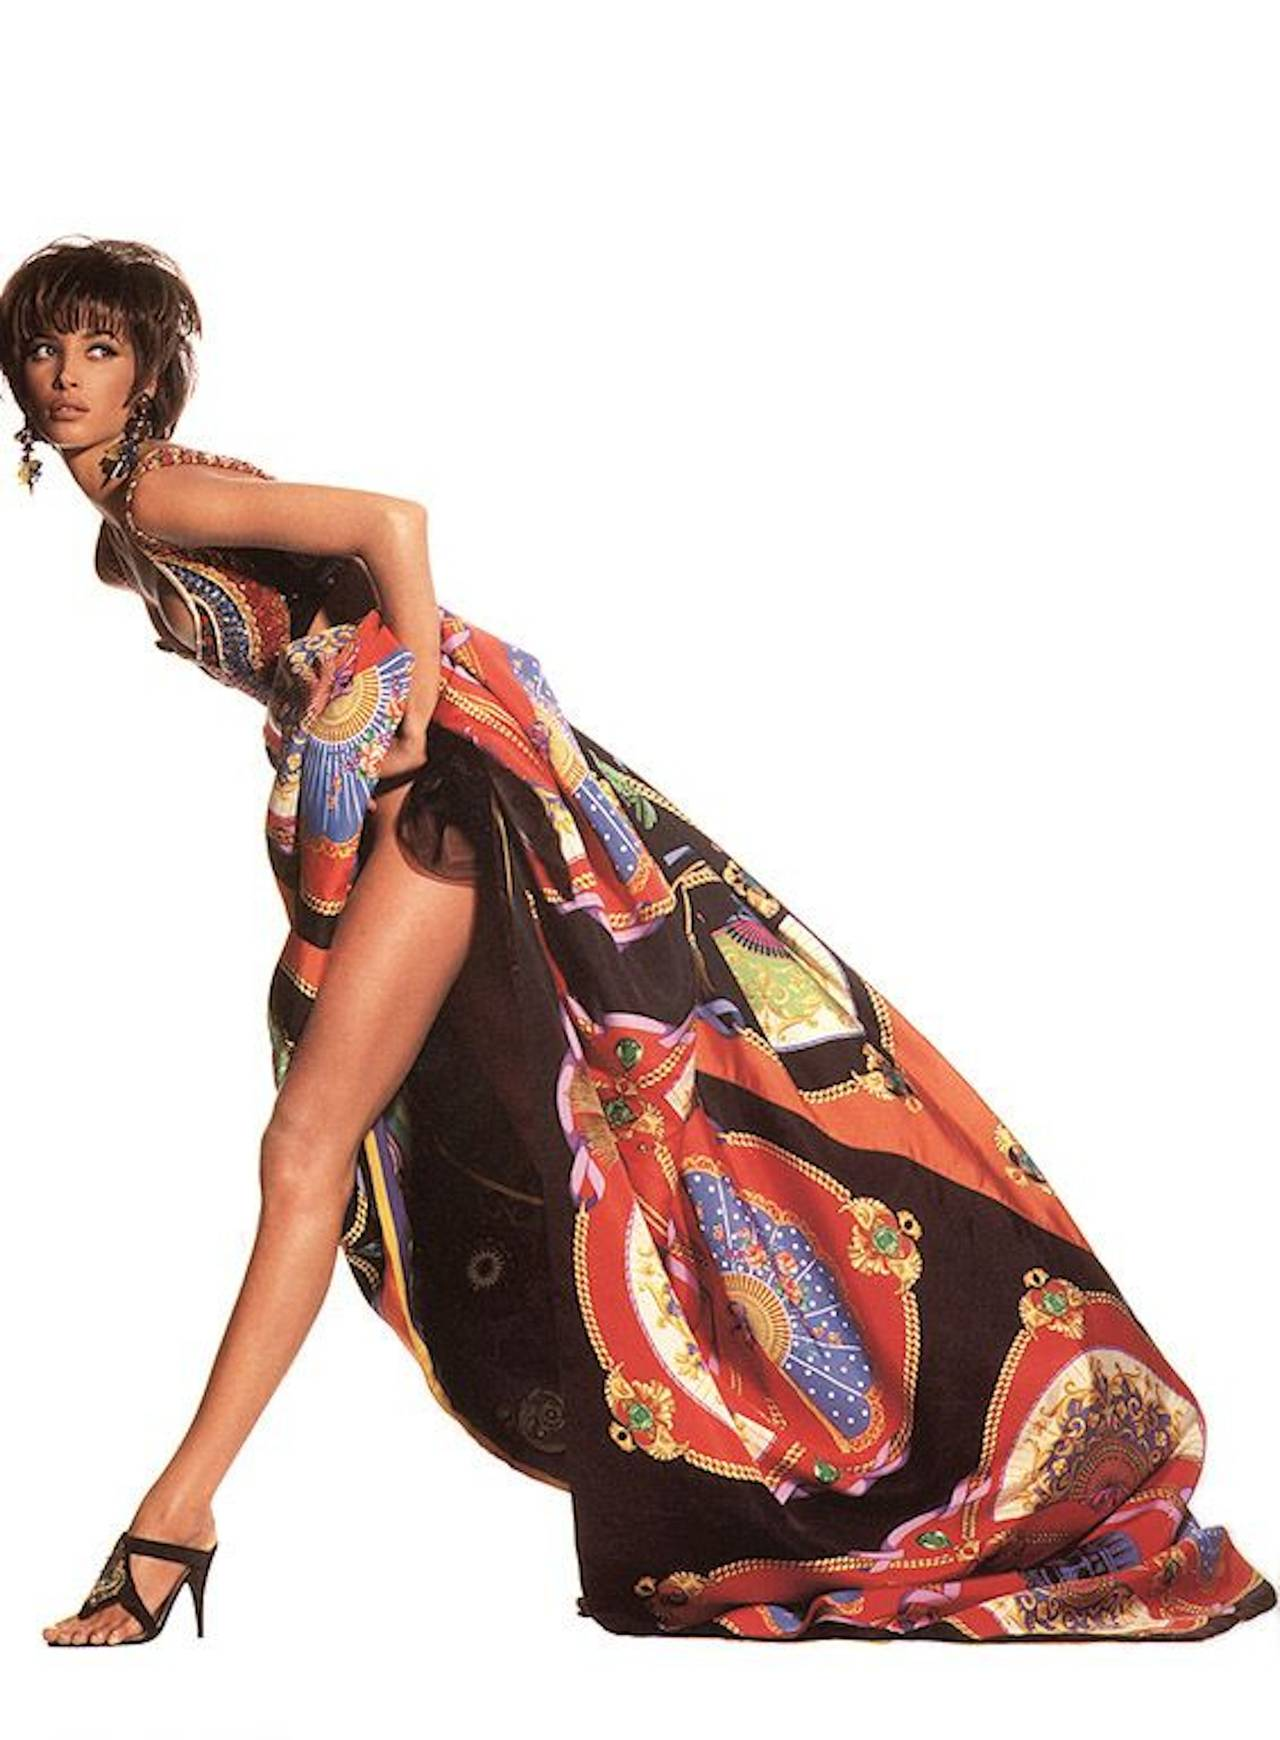 Gianni Versace Couture Ball Gown Skirt c.1991 4